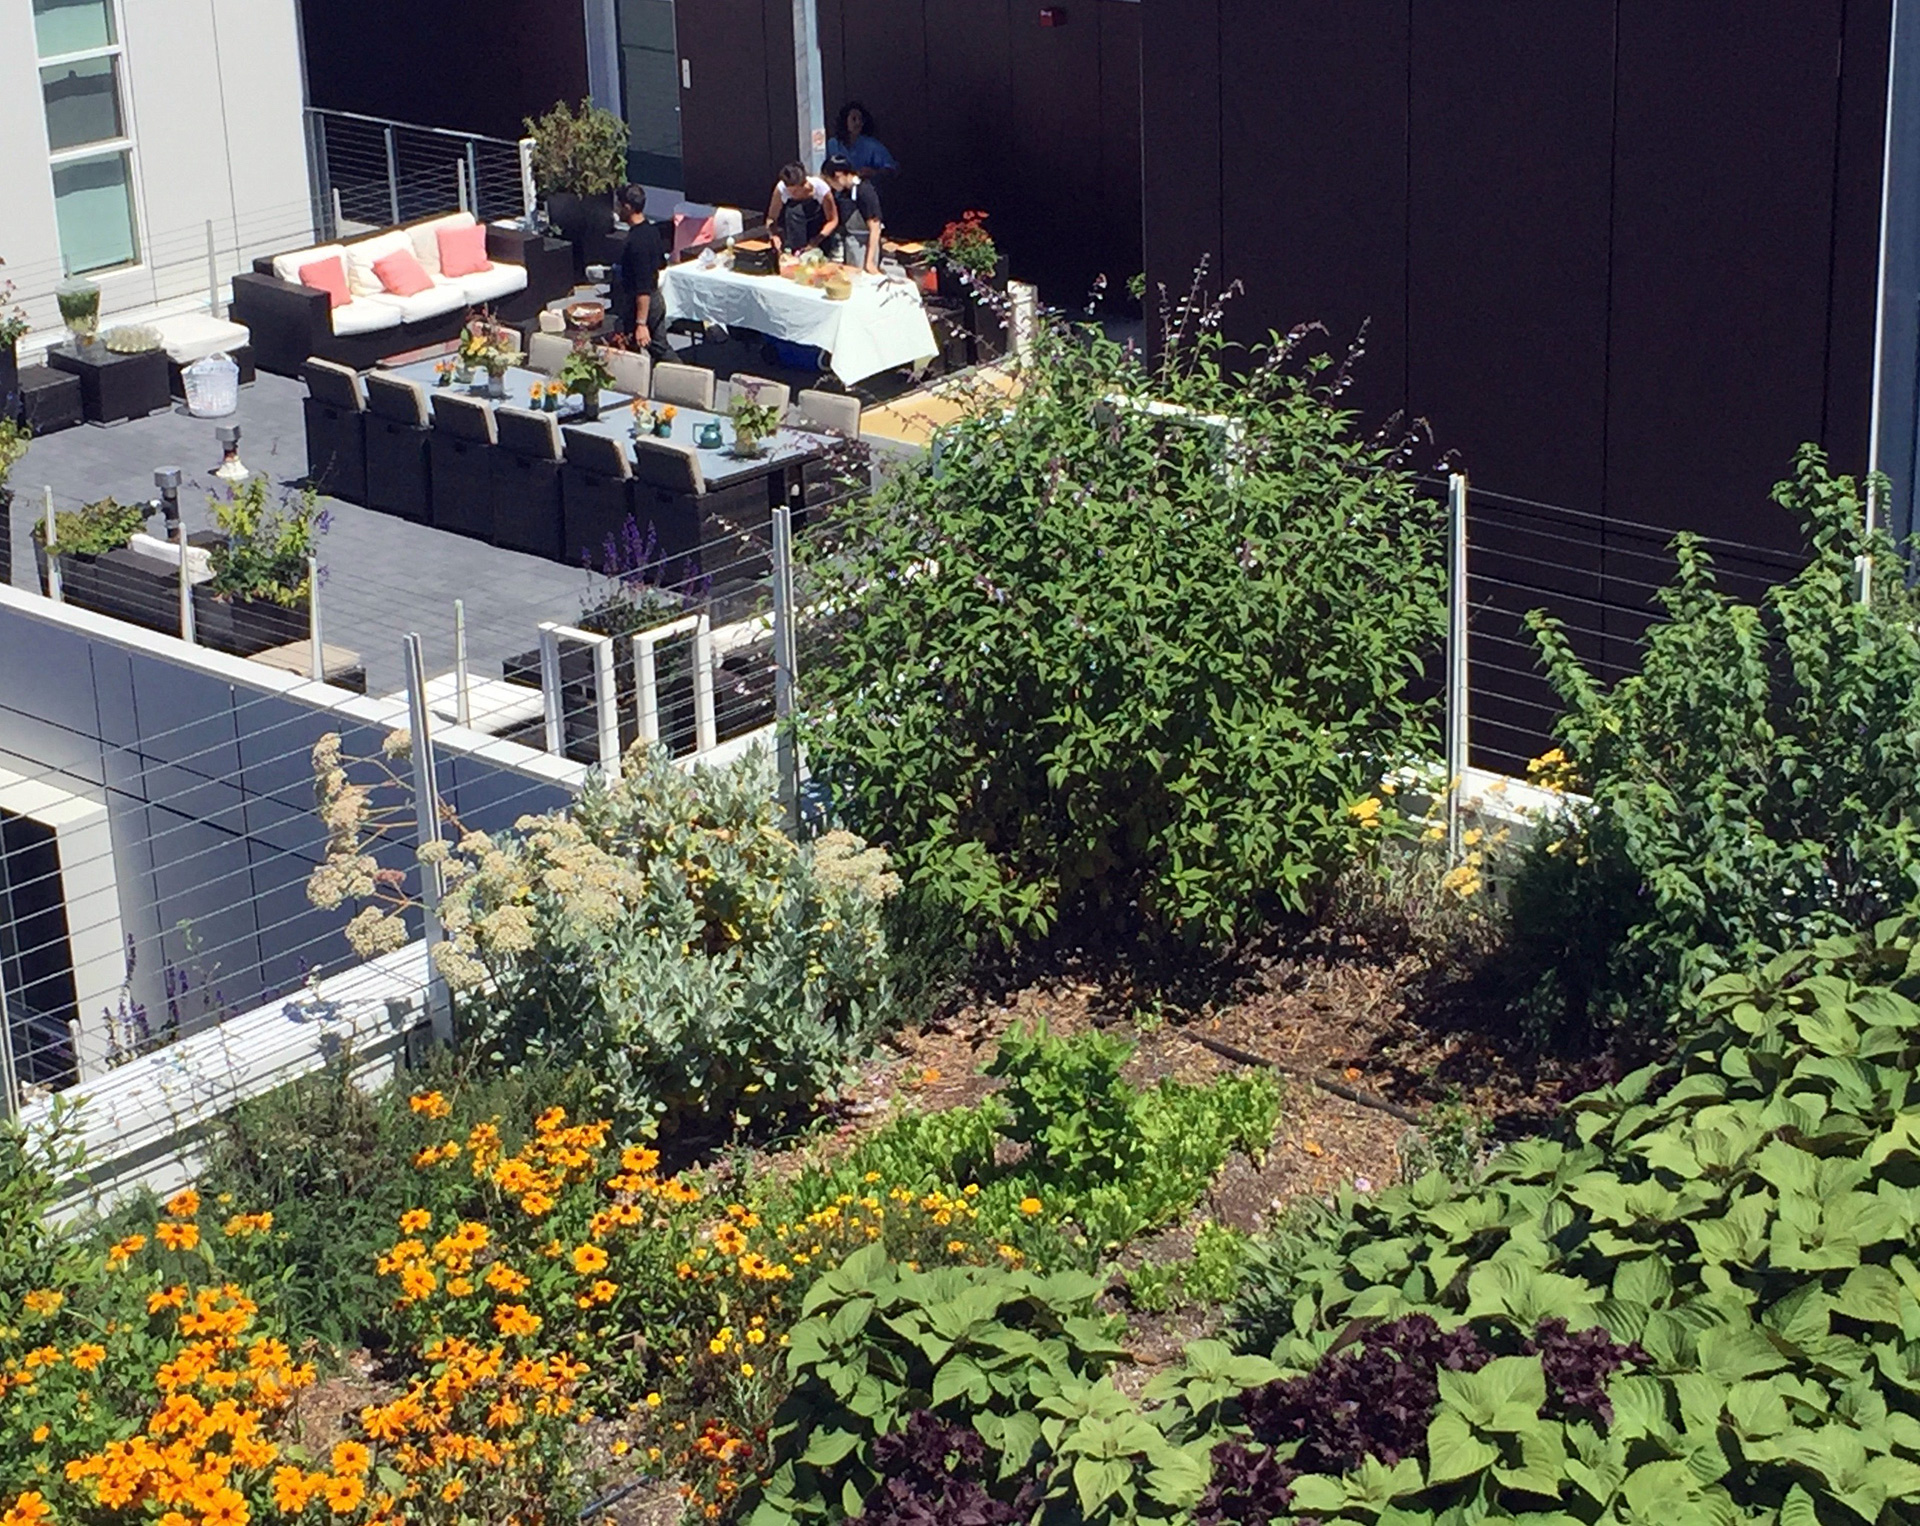 Rasmussen and assistants set up for pop-up lunch on a rooftop in Berkeley, amid the organic garden plots of Top Leaf Farms.